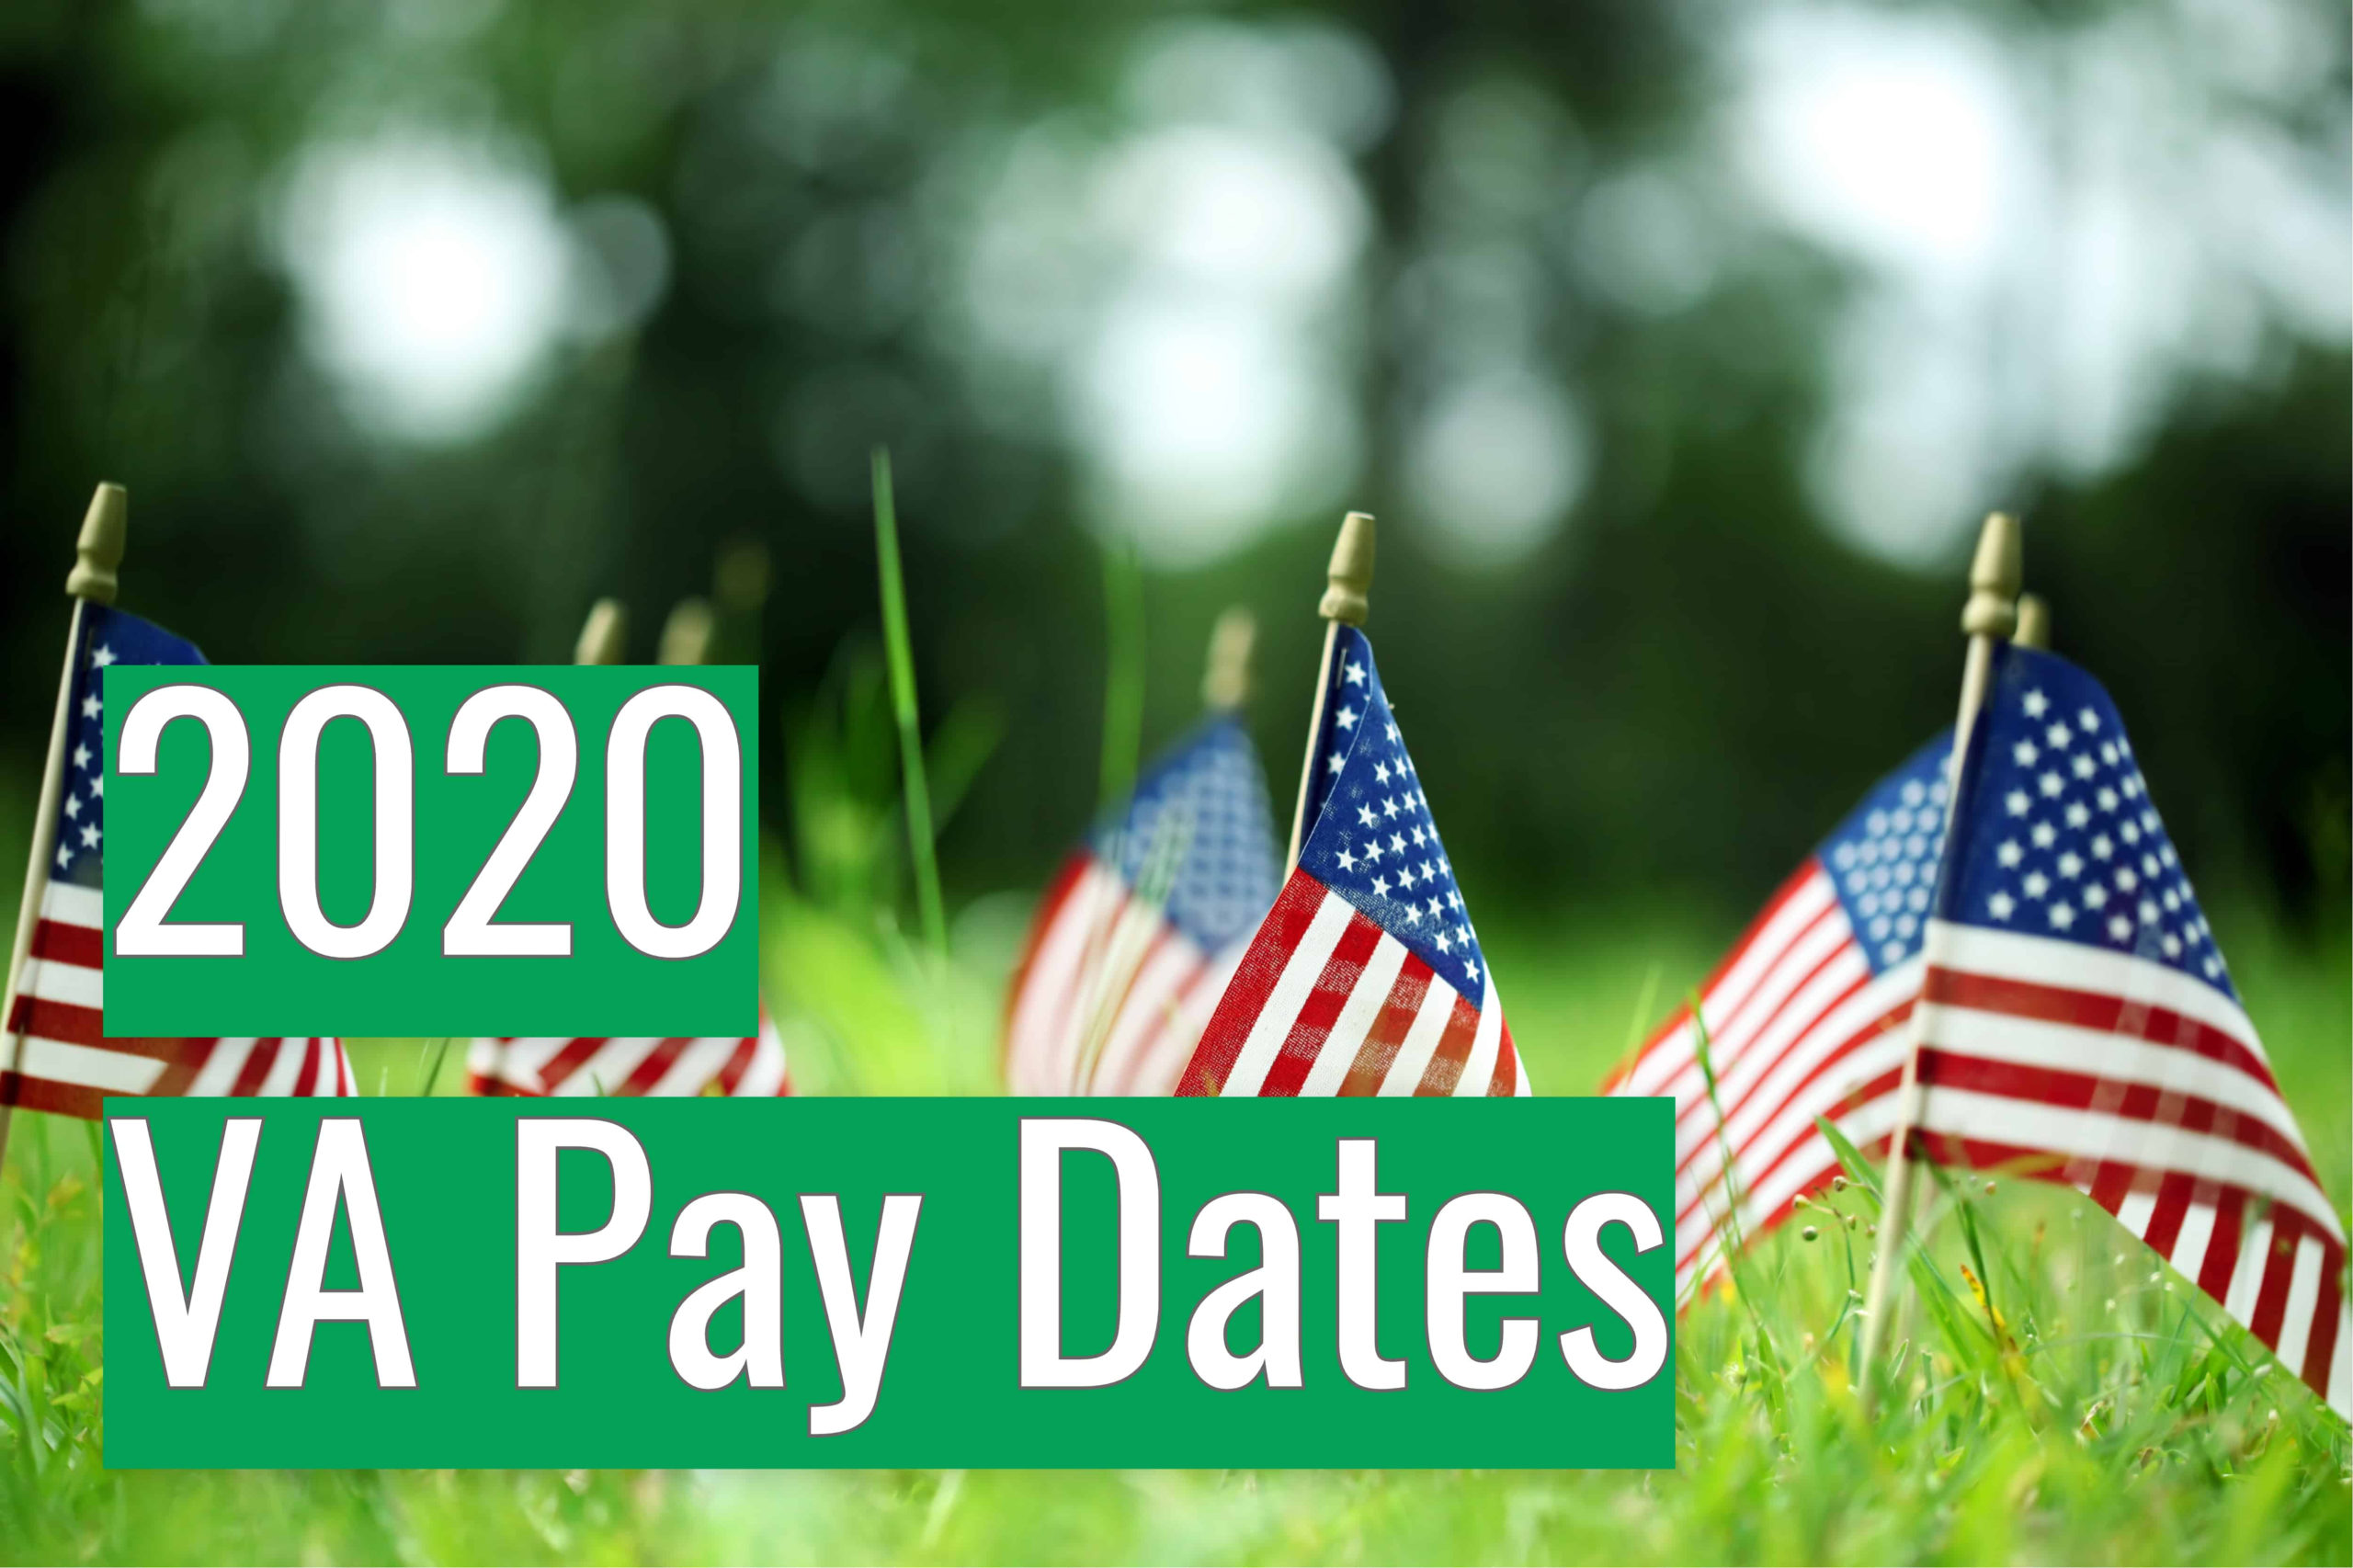 Va Disability Pay Dates 2020 - The Experts Guide - Va Claims